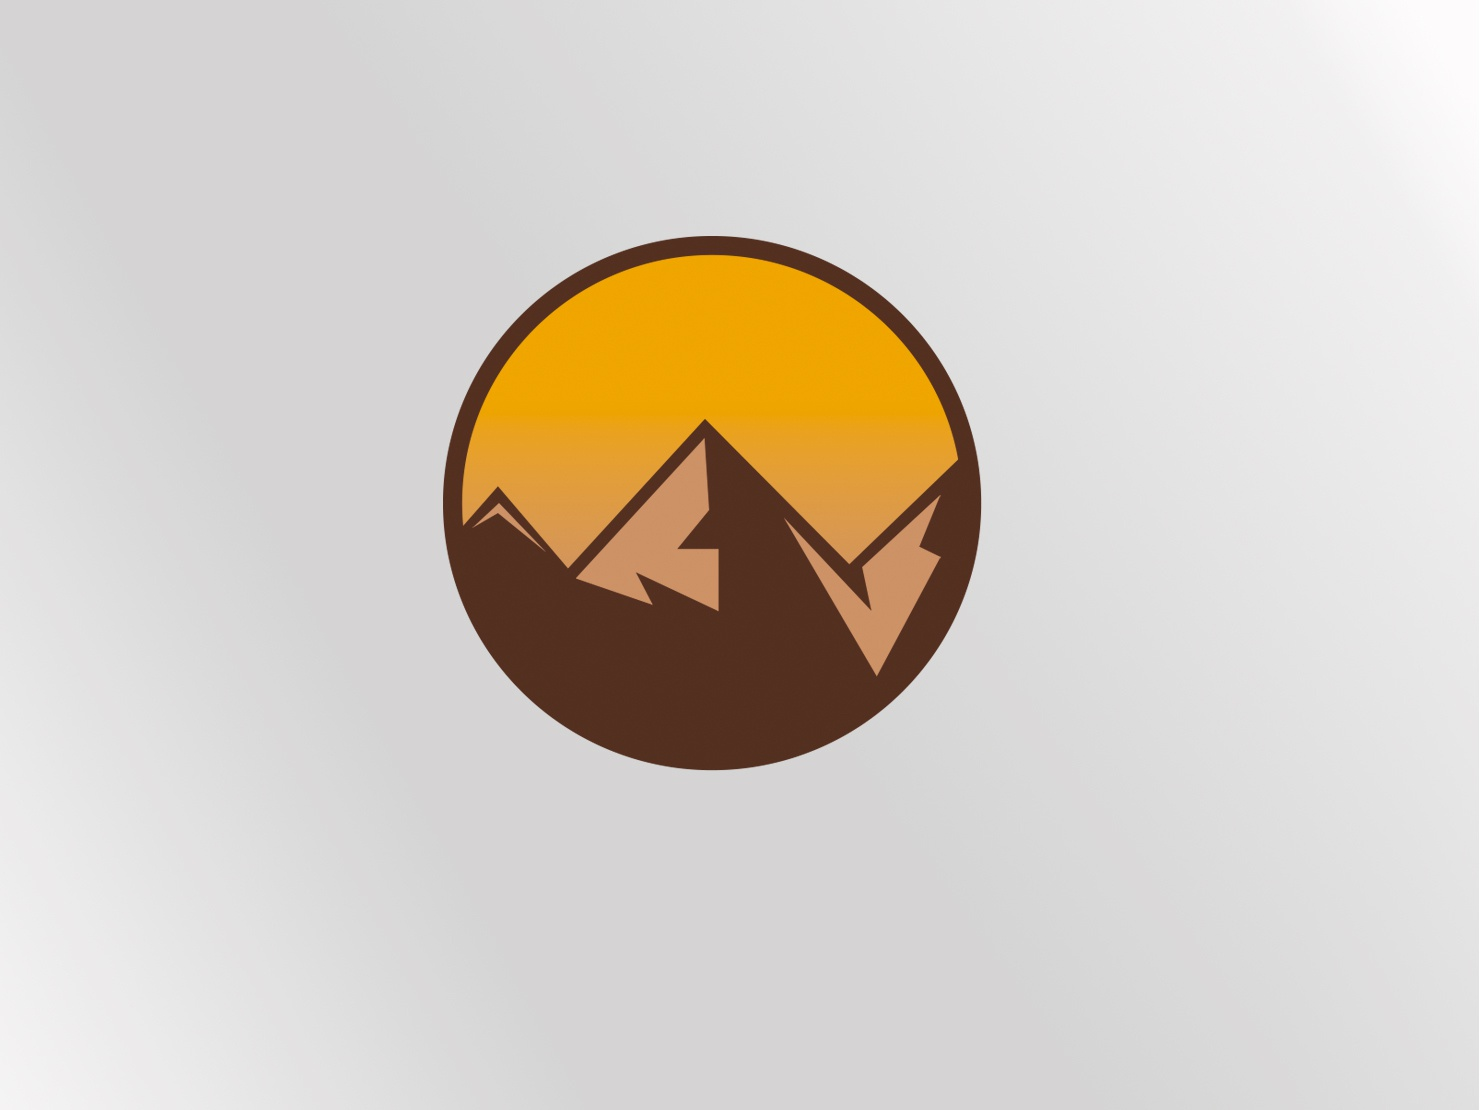 Enviromental sore environment design mountain logo mountain illustrator branding logodaily logodesign logo a day logo logo design